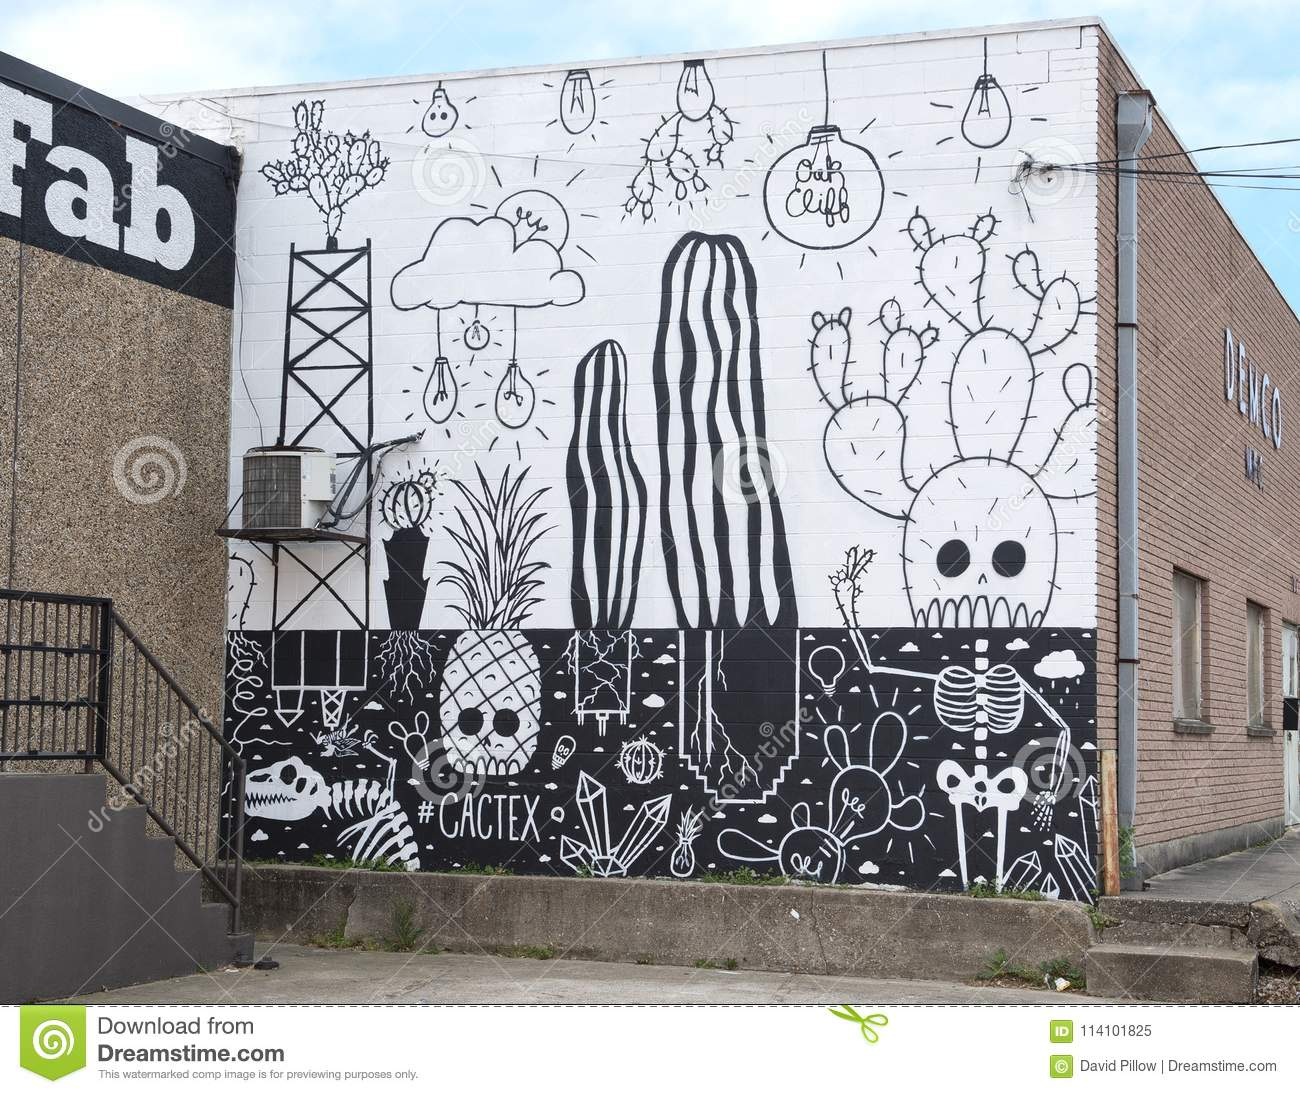 Pictured is a mural entiltled cactex painted by dallas artist wheron in the bishop arts district dallas texas it features a black and white cartoon